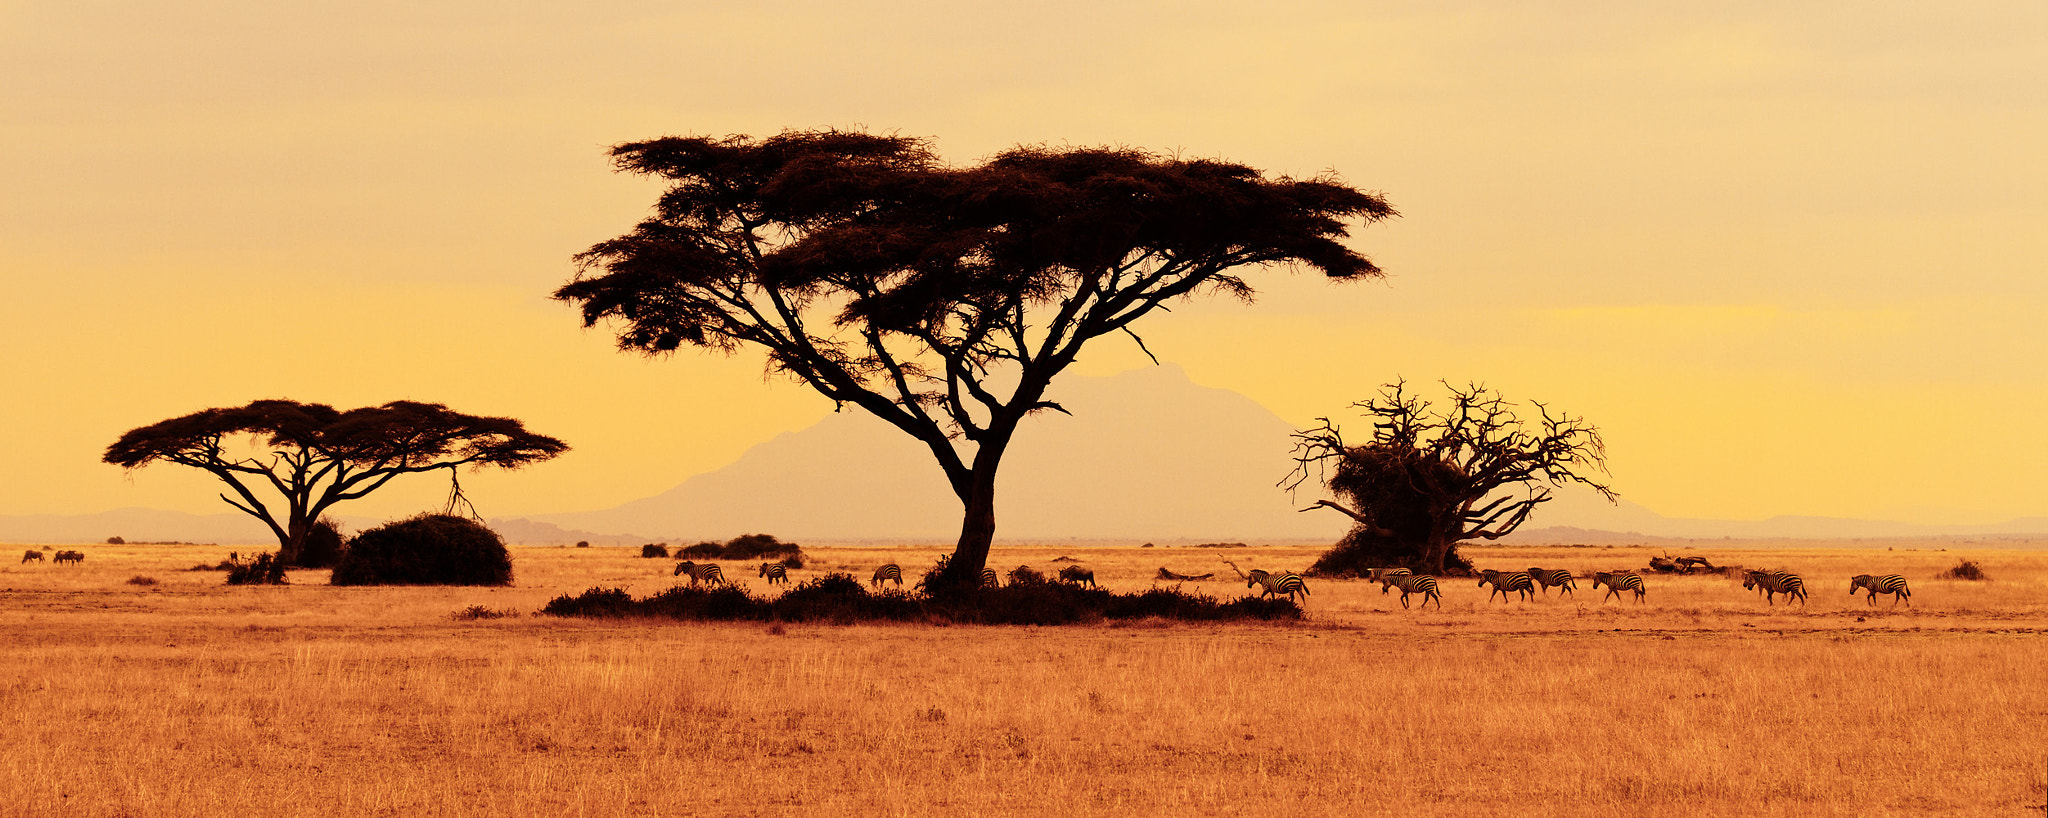 Photograph Color of Africa by Frédéric Paolino on 500px